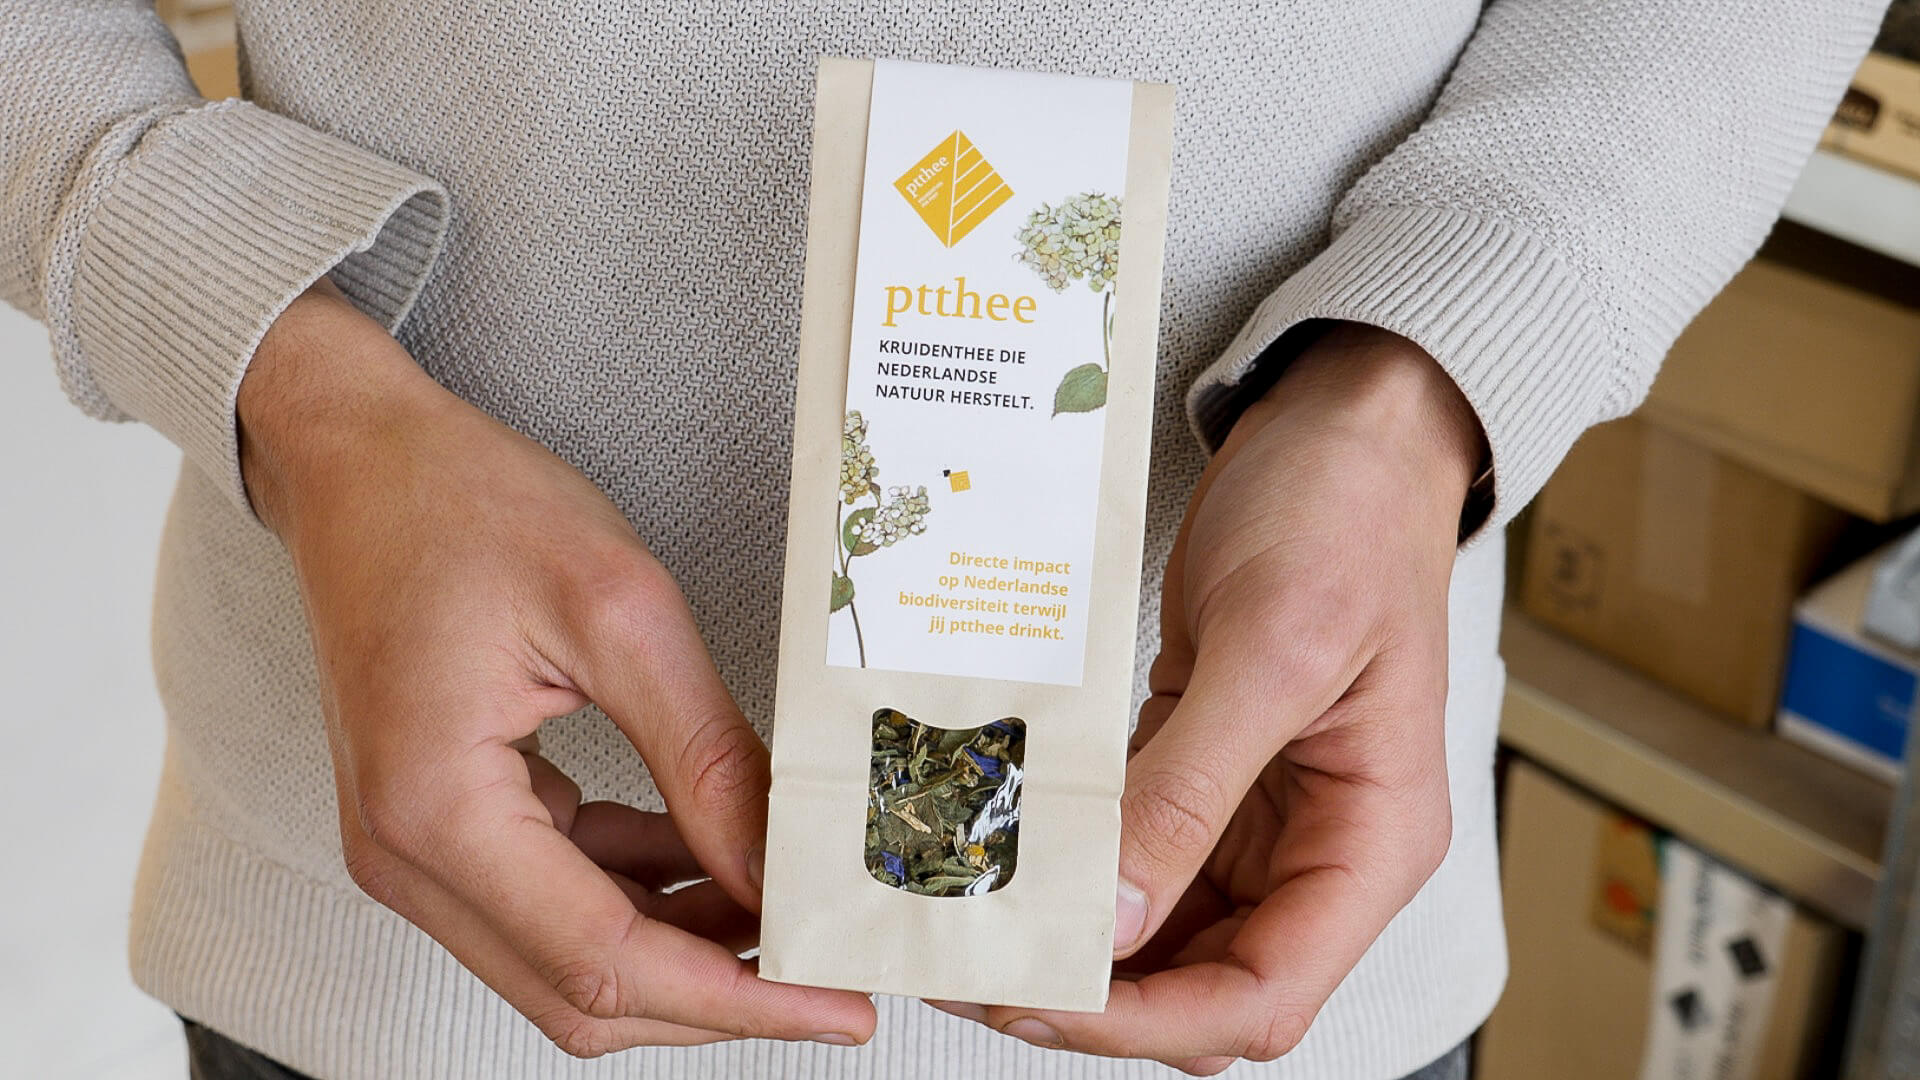 This herbal tea restores biodiversity